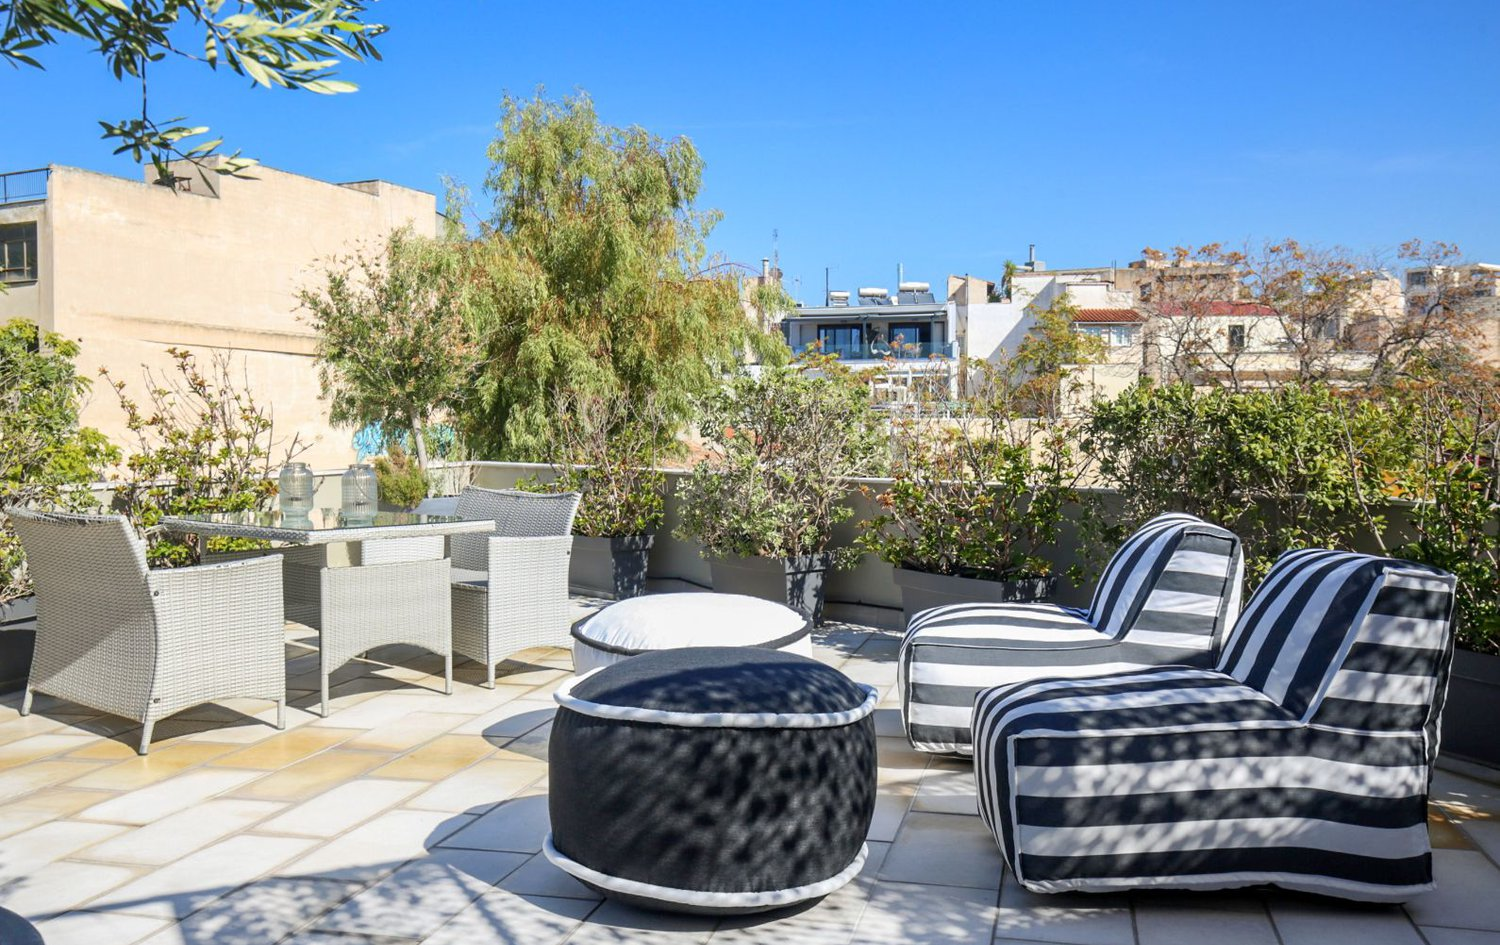 Roof Garden - Heart of Athens